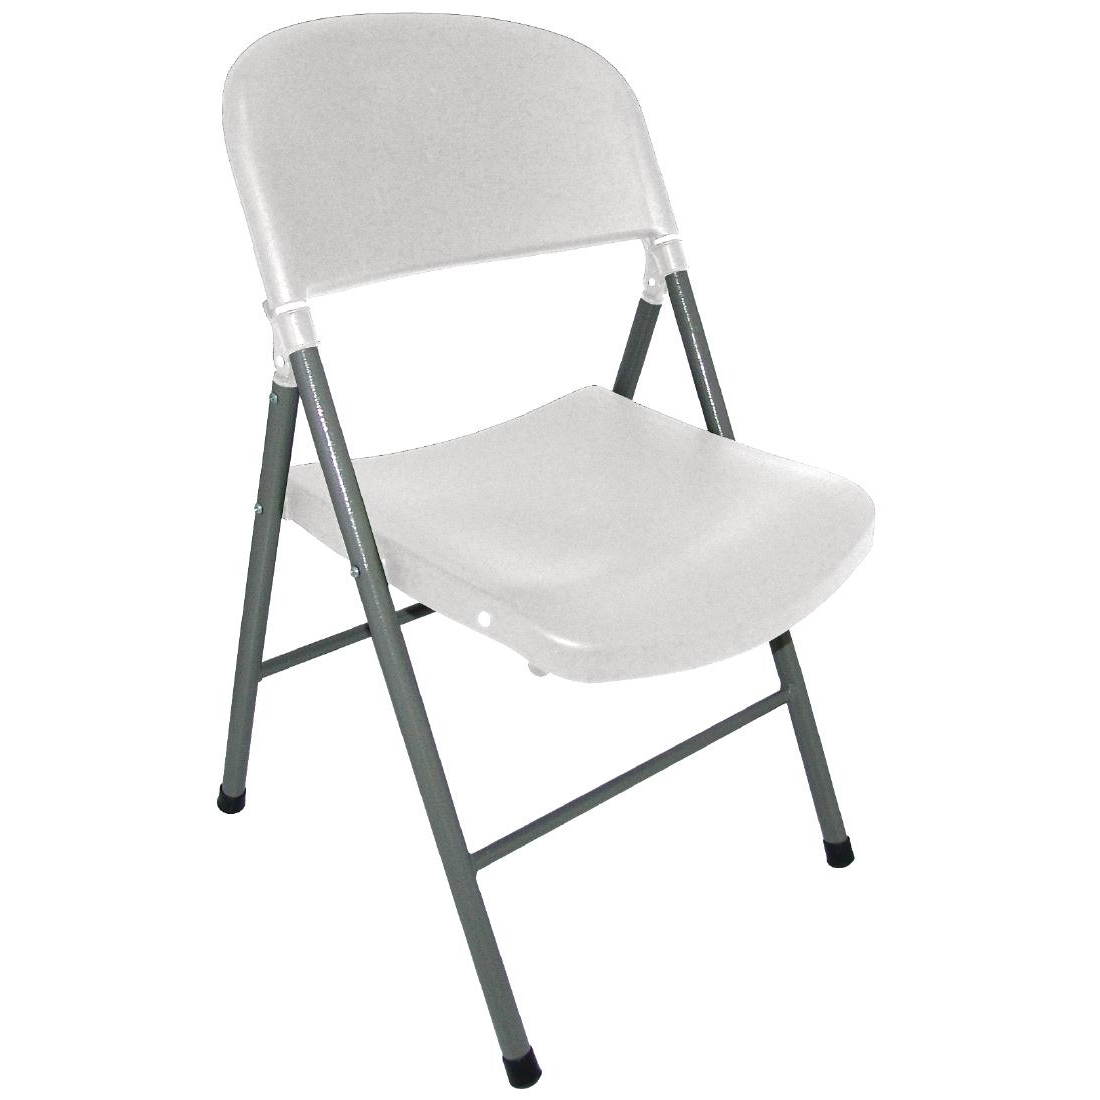 Bolero Foldaway Utility Chairs White (Pack of 2)